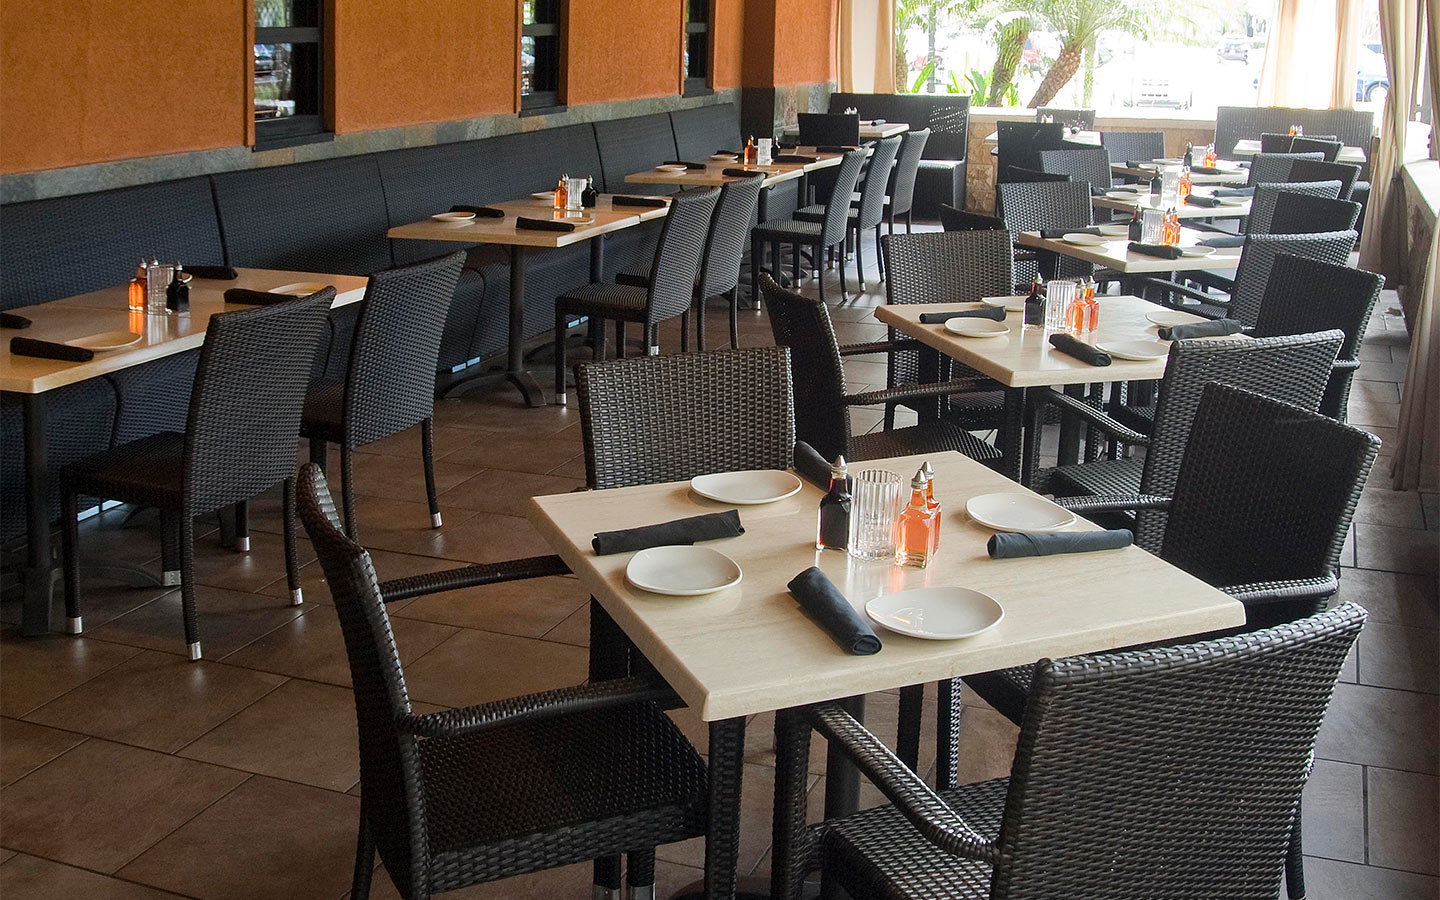 Restaurant Chairs And Tables Atc Furniture